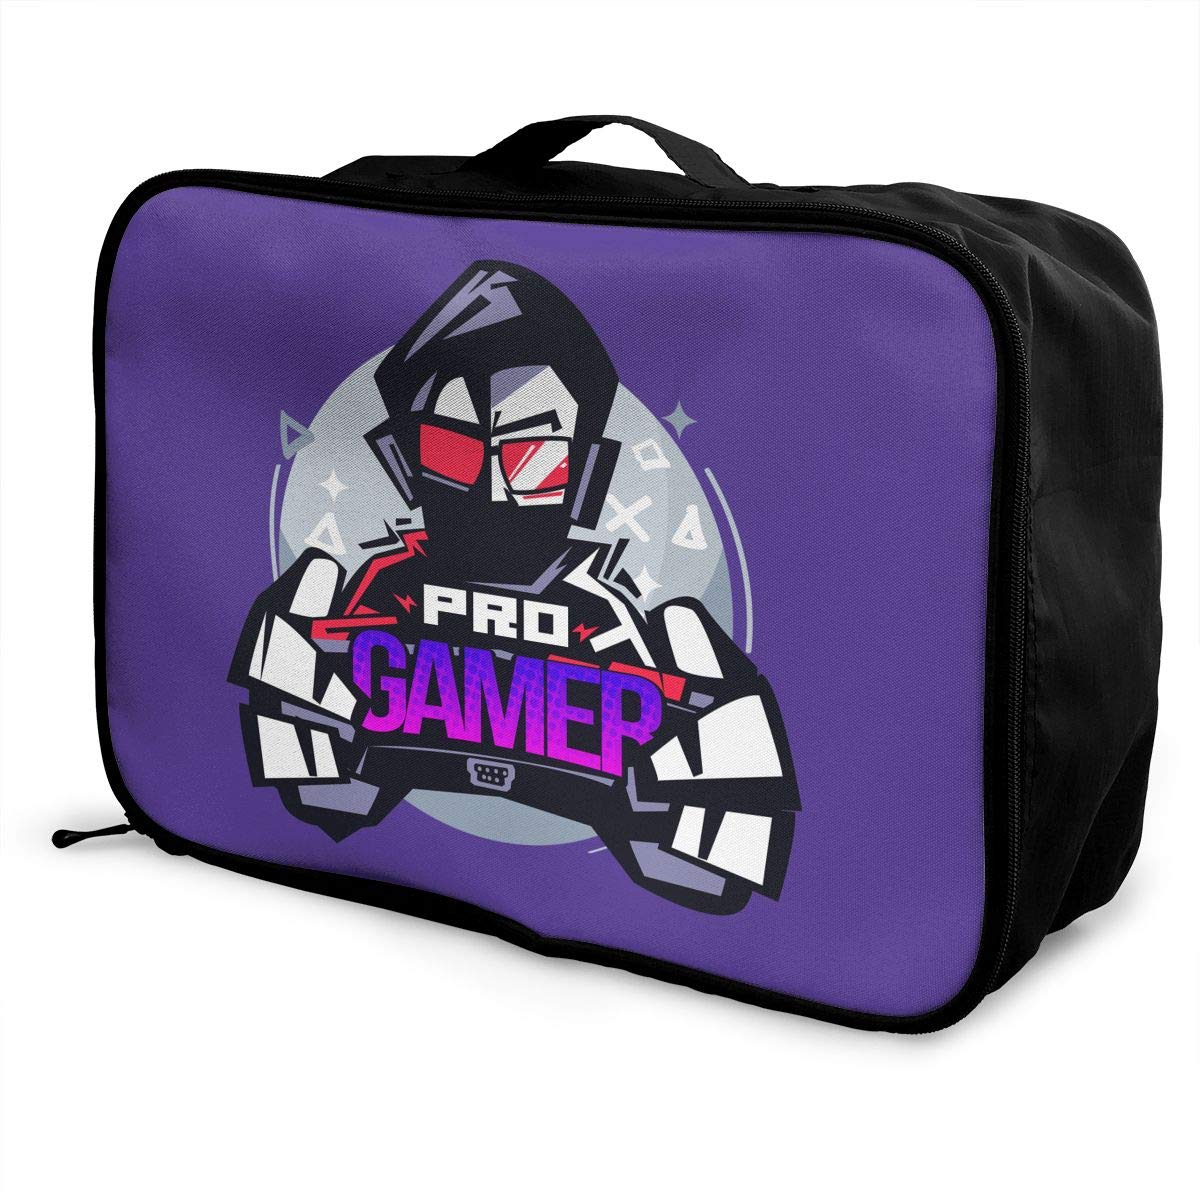 Gamer Logo Portable Carry On Luggage Bag For Travel Camping Sport White Travel Duffel Bag Waterproof Lightweight Large Capacity Duffel Tote Bag Pro Gamer